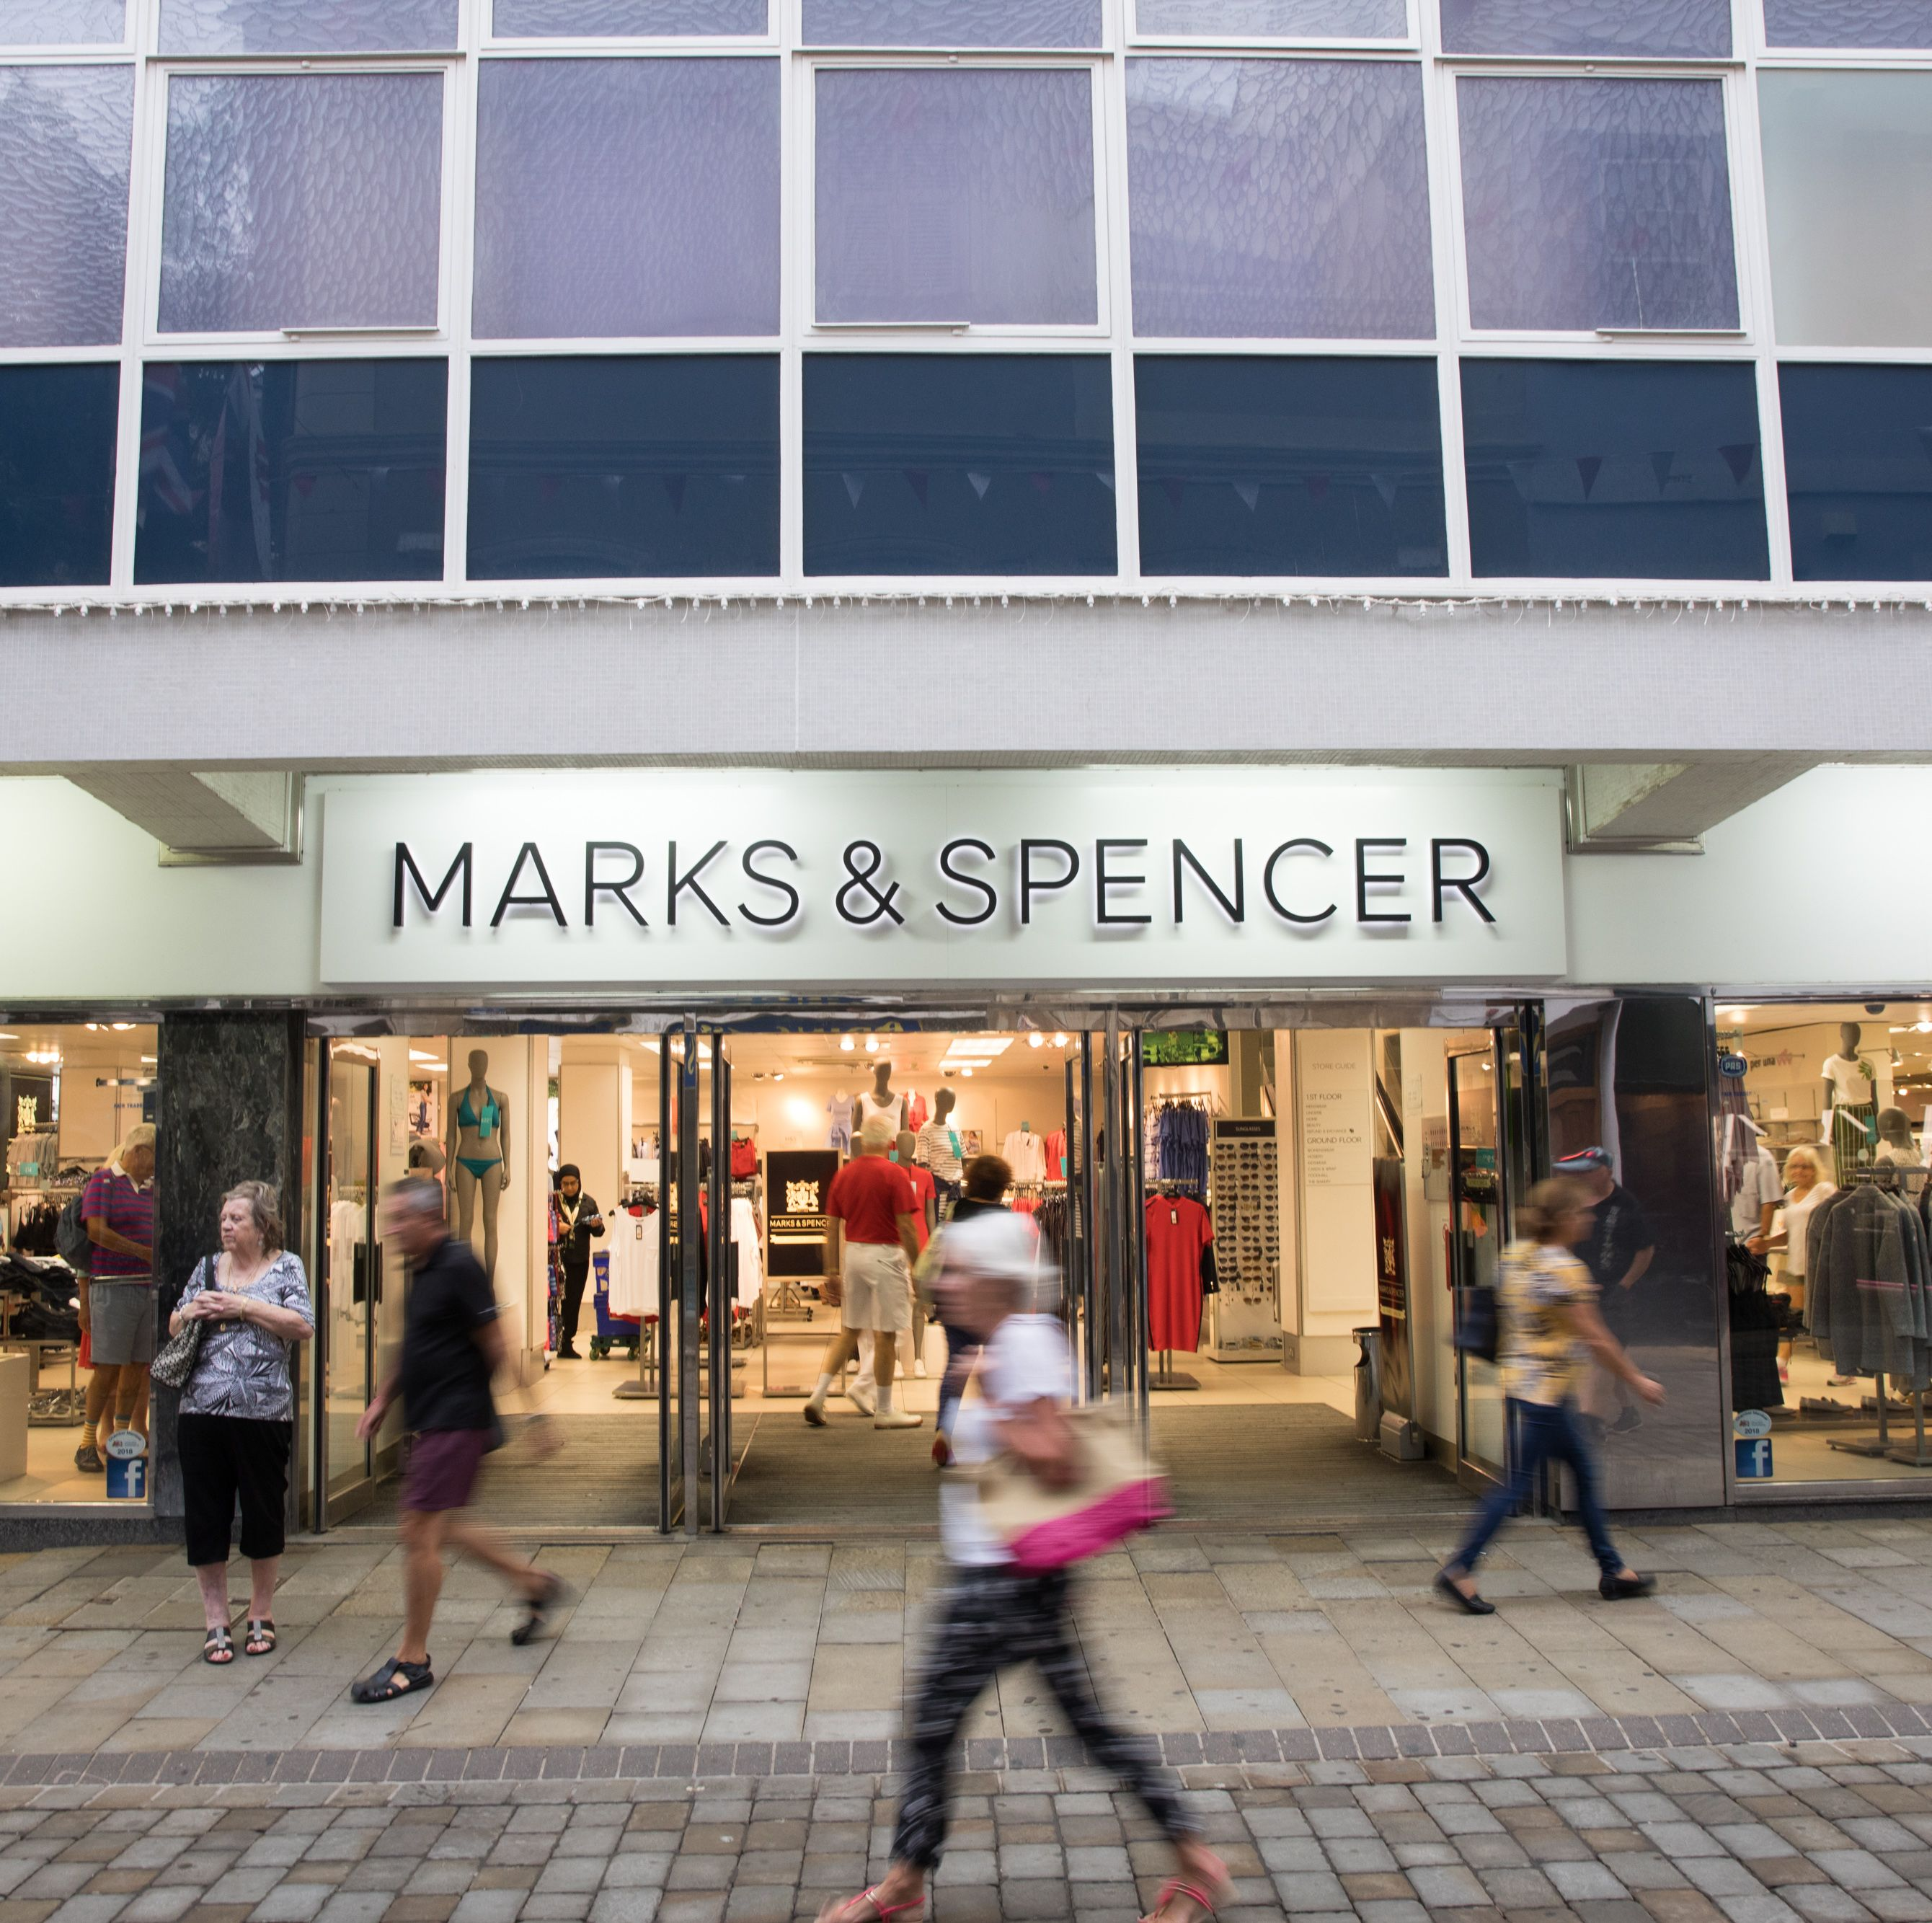 Marks & Spencer announces the closure of over 100 stores